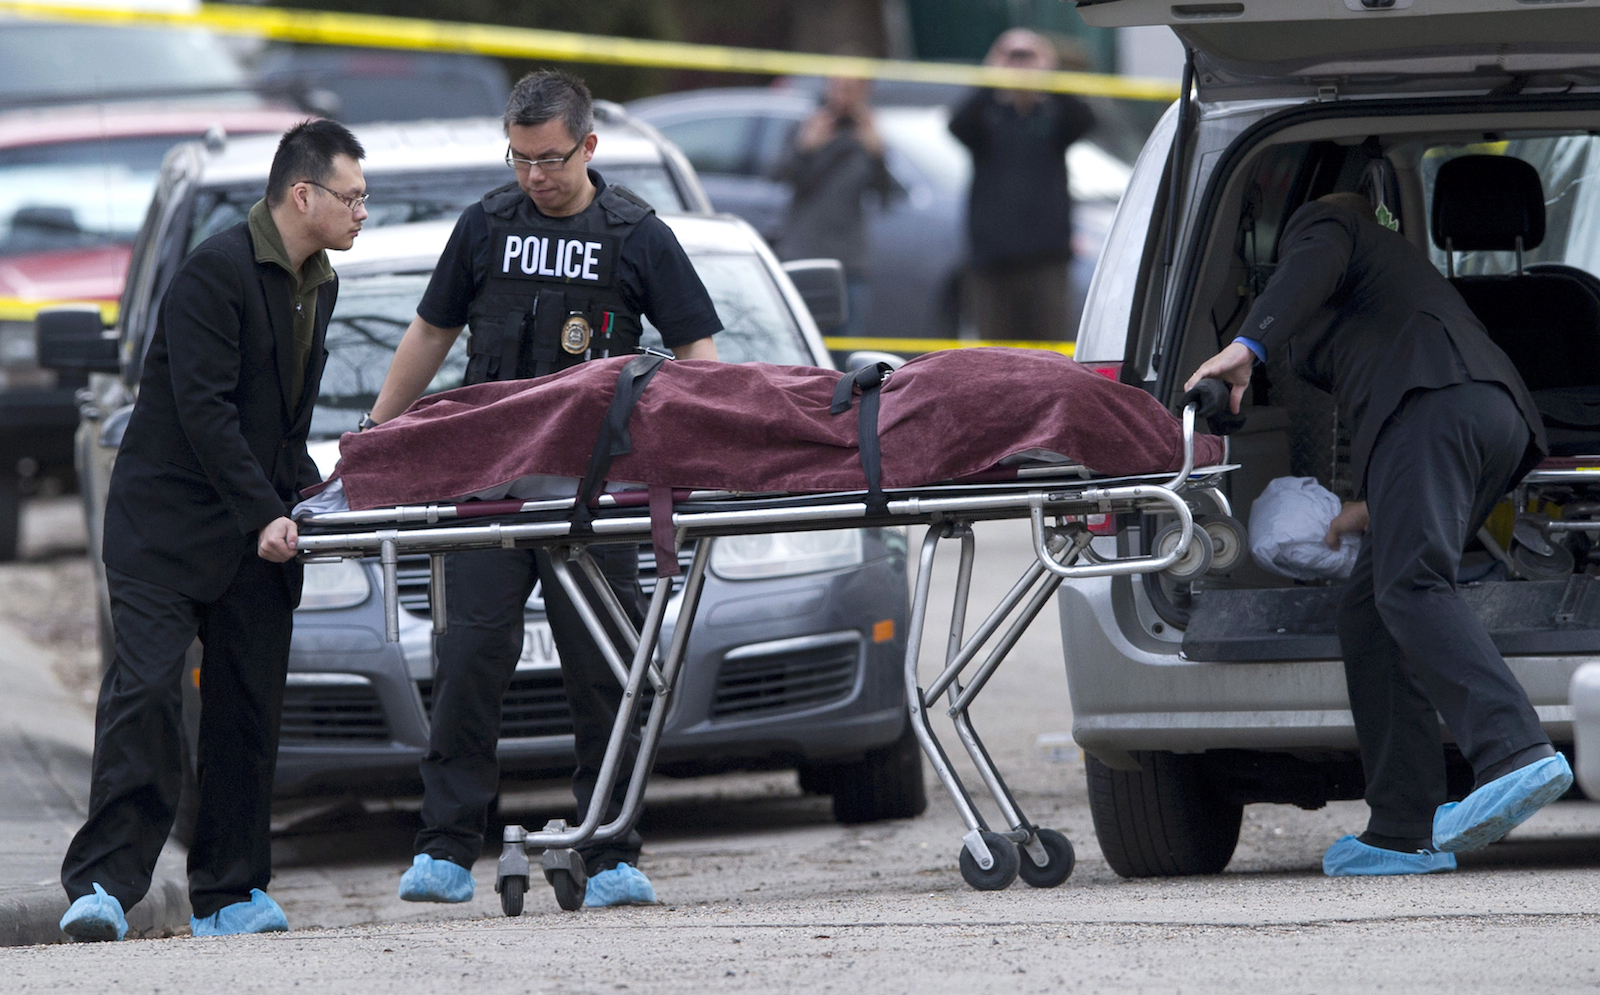 Police remove a body from the scene of a multiple fatal stabbing in northwest Calgary, Alberta on Tuesday, April 15, 2014. Police say five people are dead after a stabbing at a house party. THE CANADIAN PRESS/Larry MacDougal